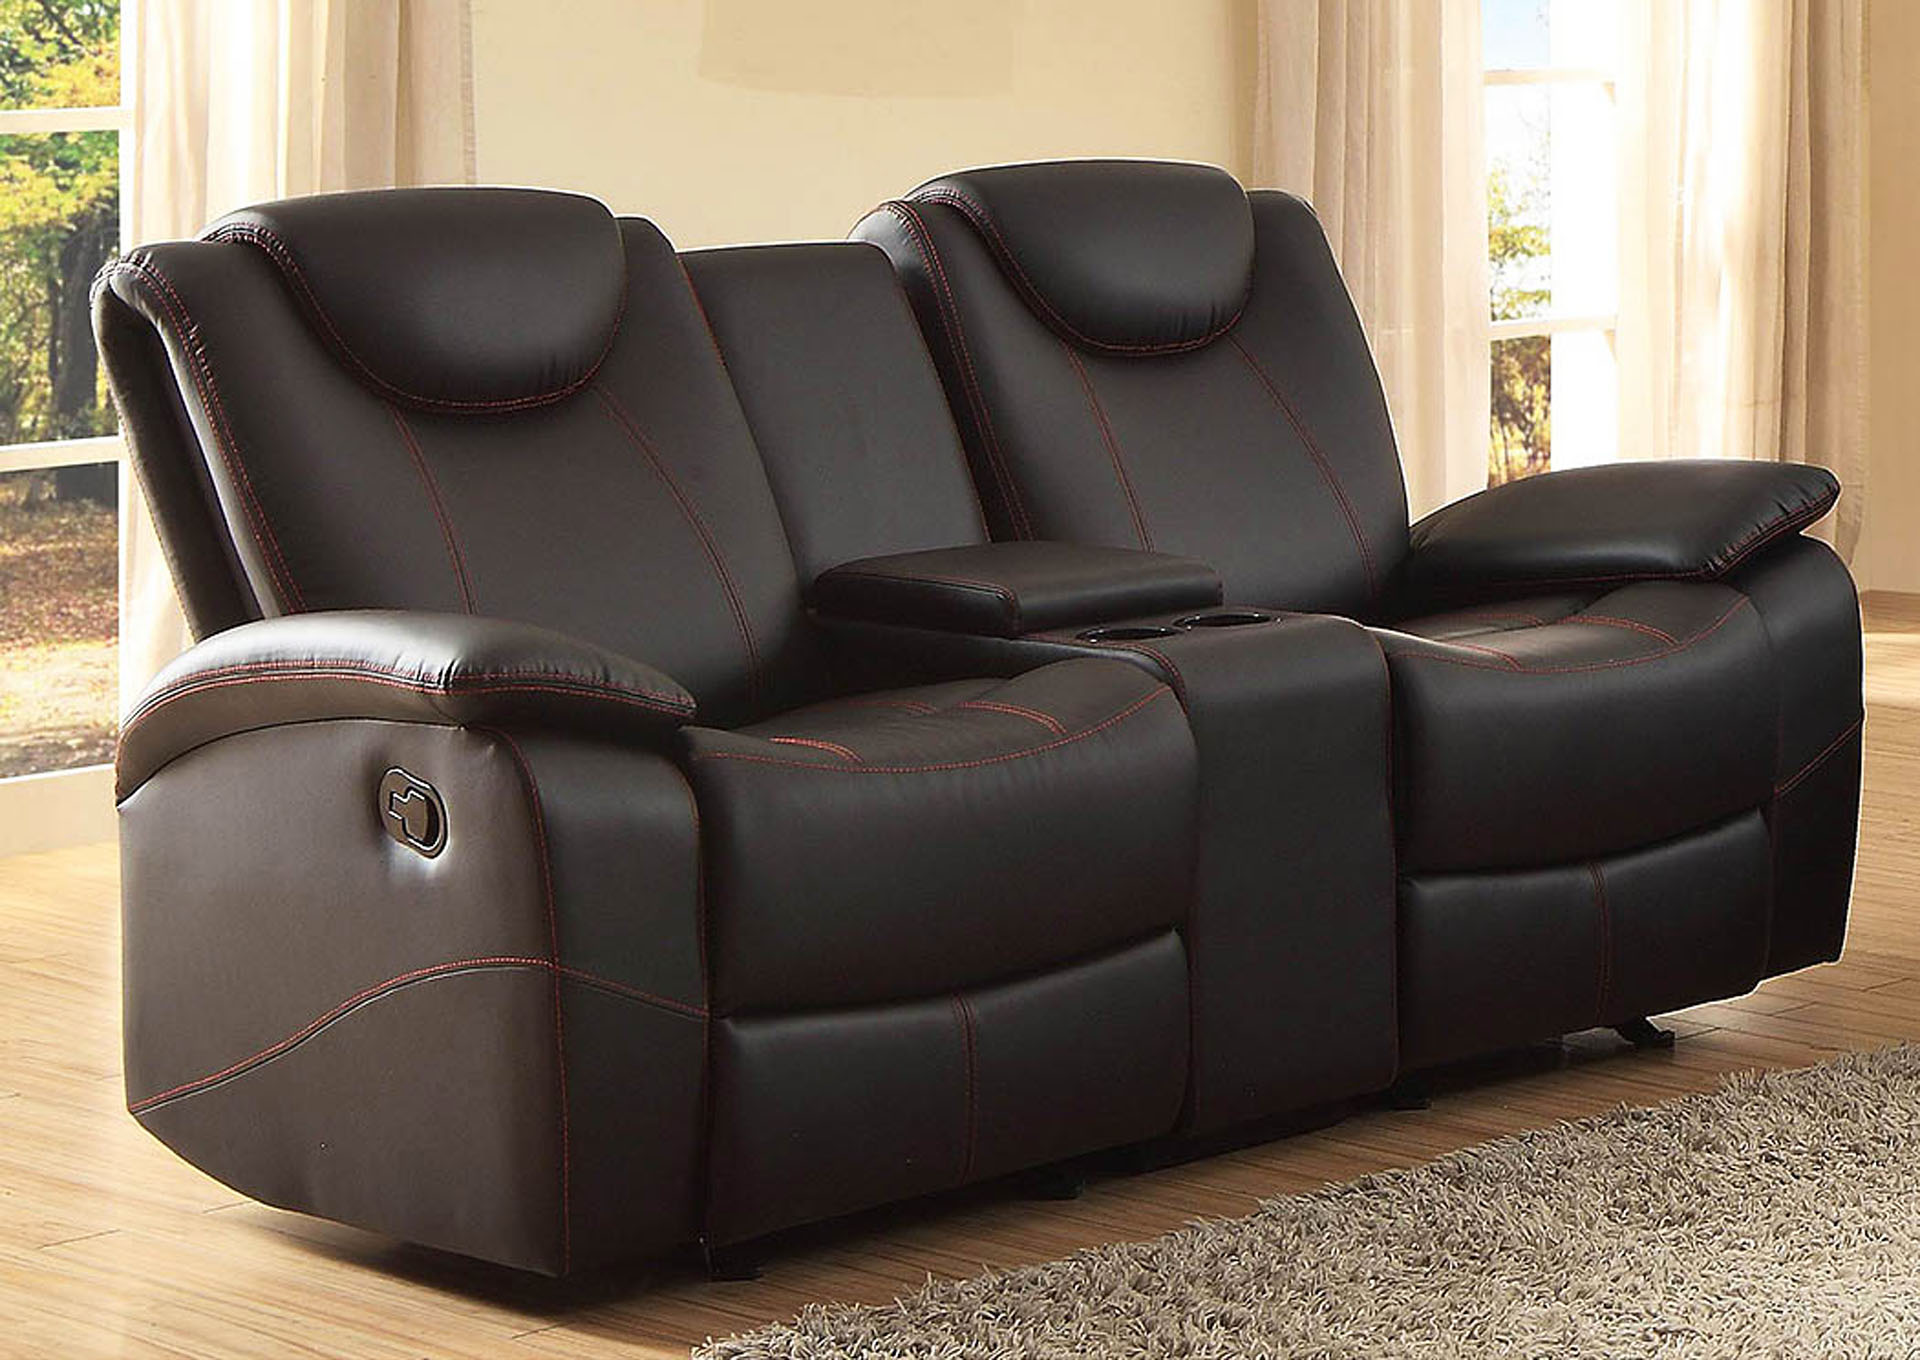 Long island discount furniture talbot black double glider reclining loveseat w center console Reclining loveseat with center console